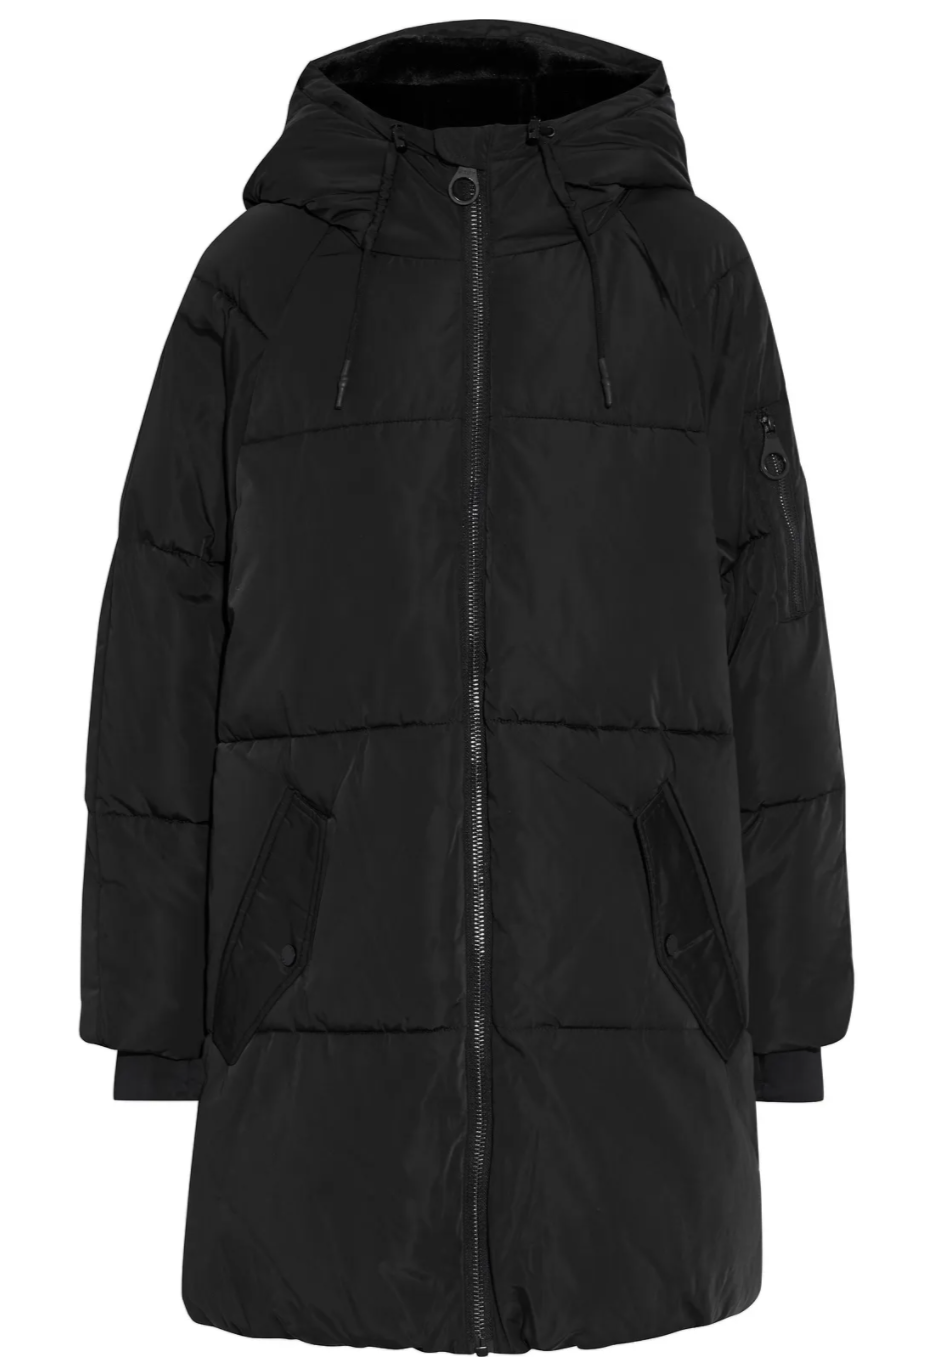 DKNY Quilted Shell Hooded Coat in Black (Photo via The Outnet)